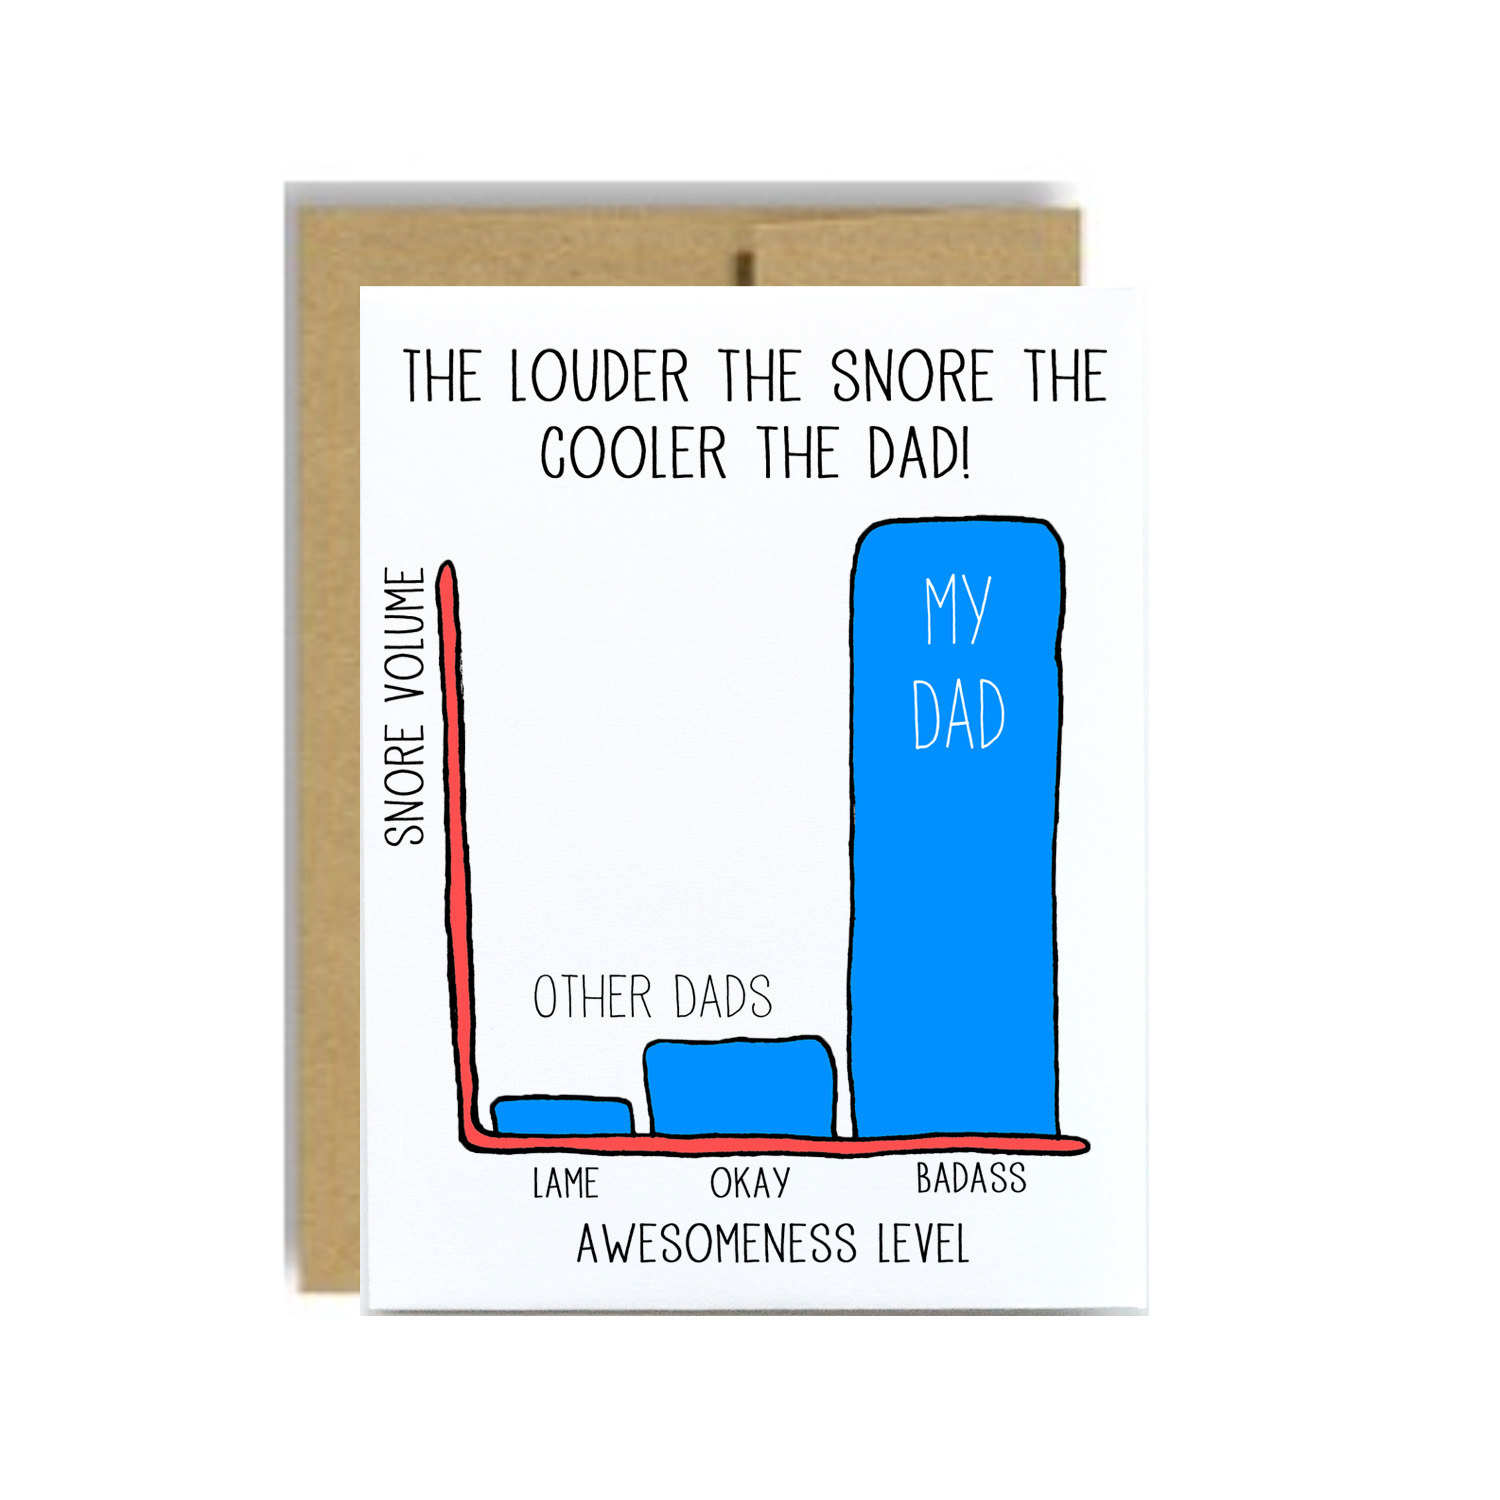 Funny Birthday Card Ideas For Dad 100 Cool Birthday Cards For Dad Funny Birthday Card For Dad Him